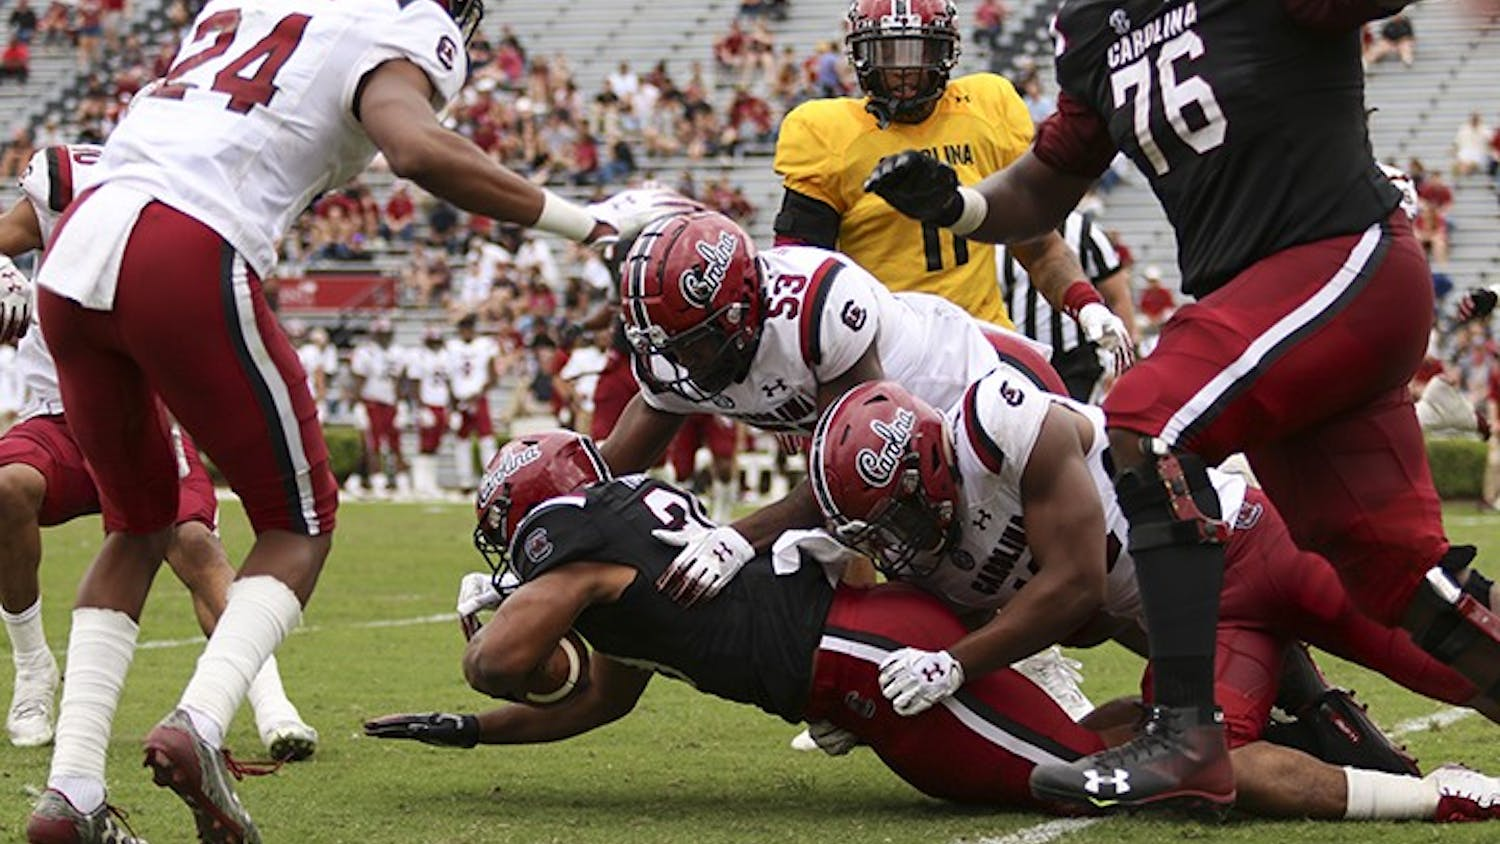 Gamecock players make a tackle during the spring game at Williams-Brice Stadium during the 2019 spring game.